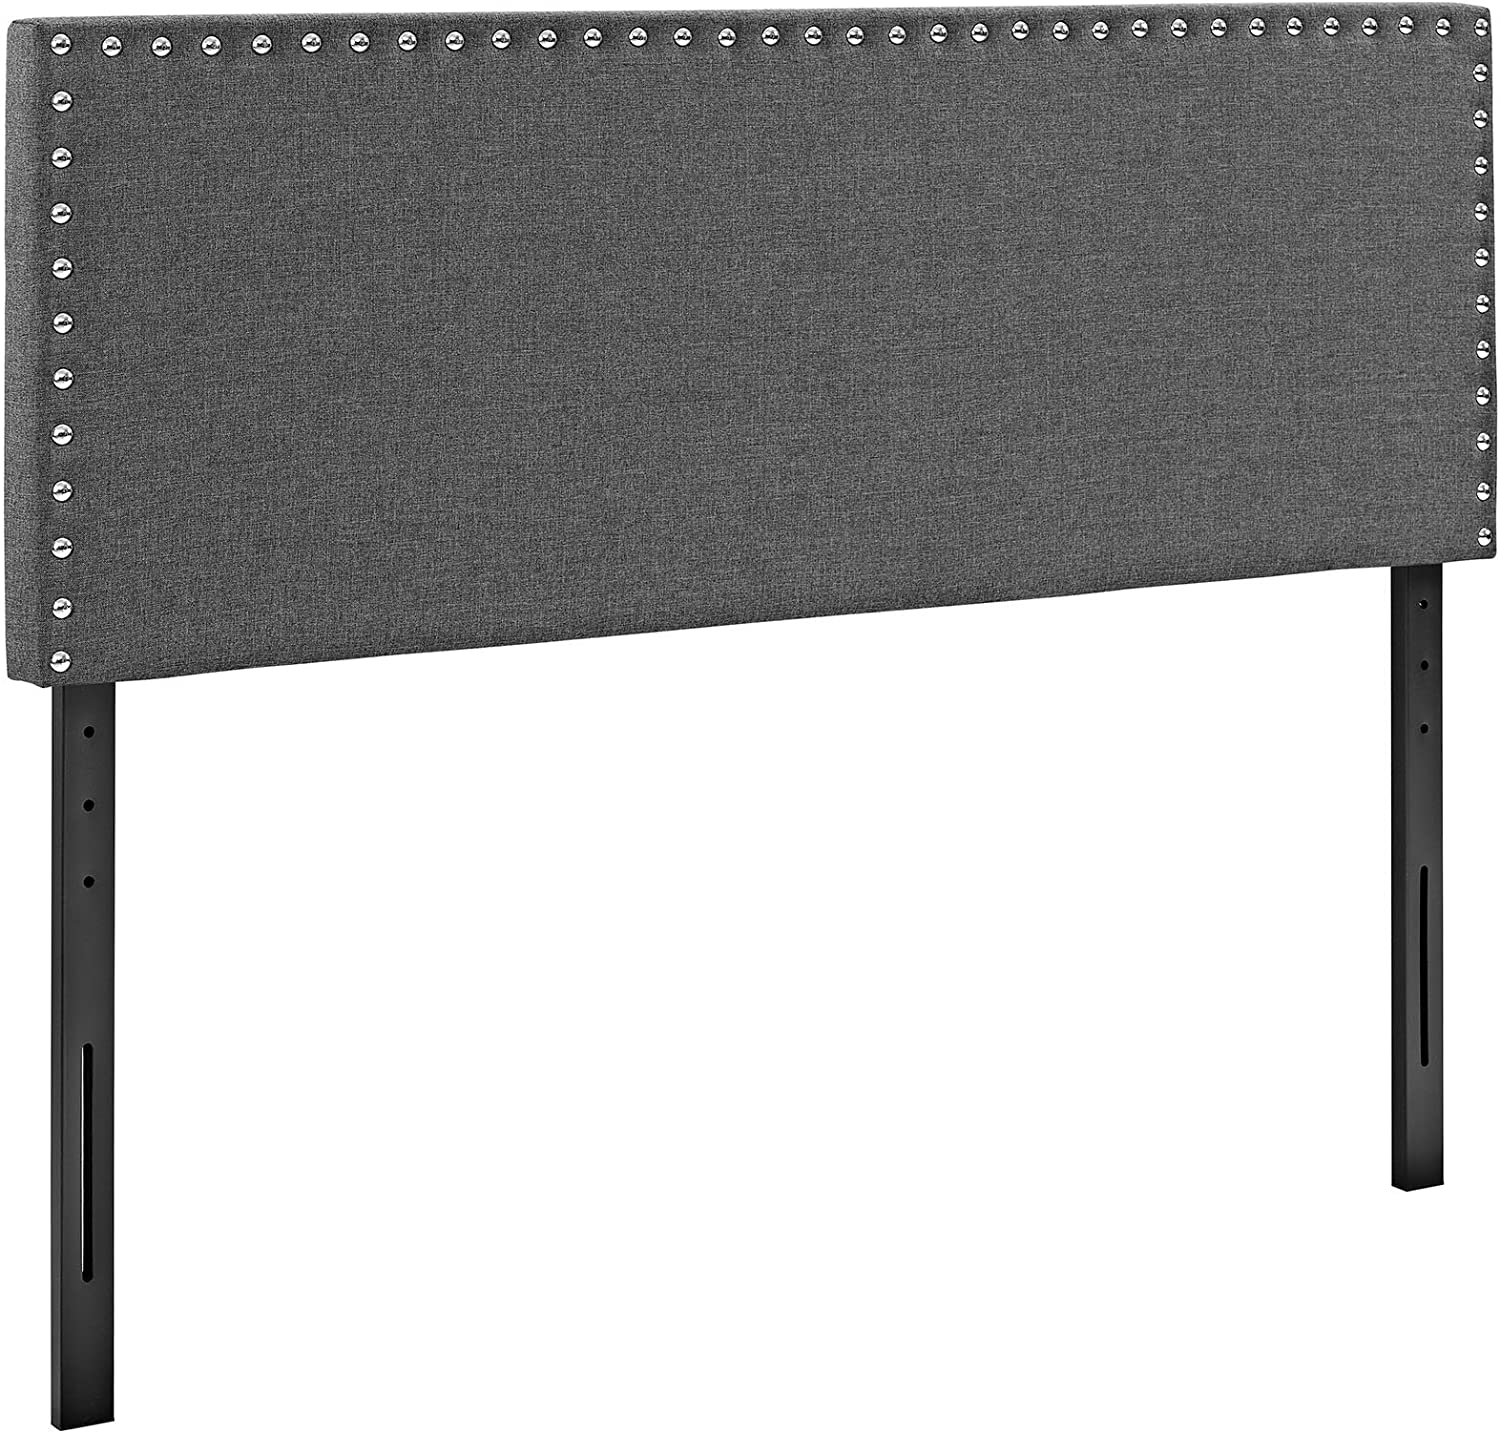 Modway Phoebe Linen Fabric Upholstered King Headboard in Gray with Nailhead Trim